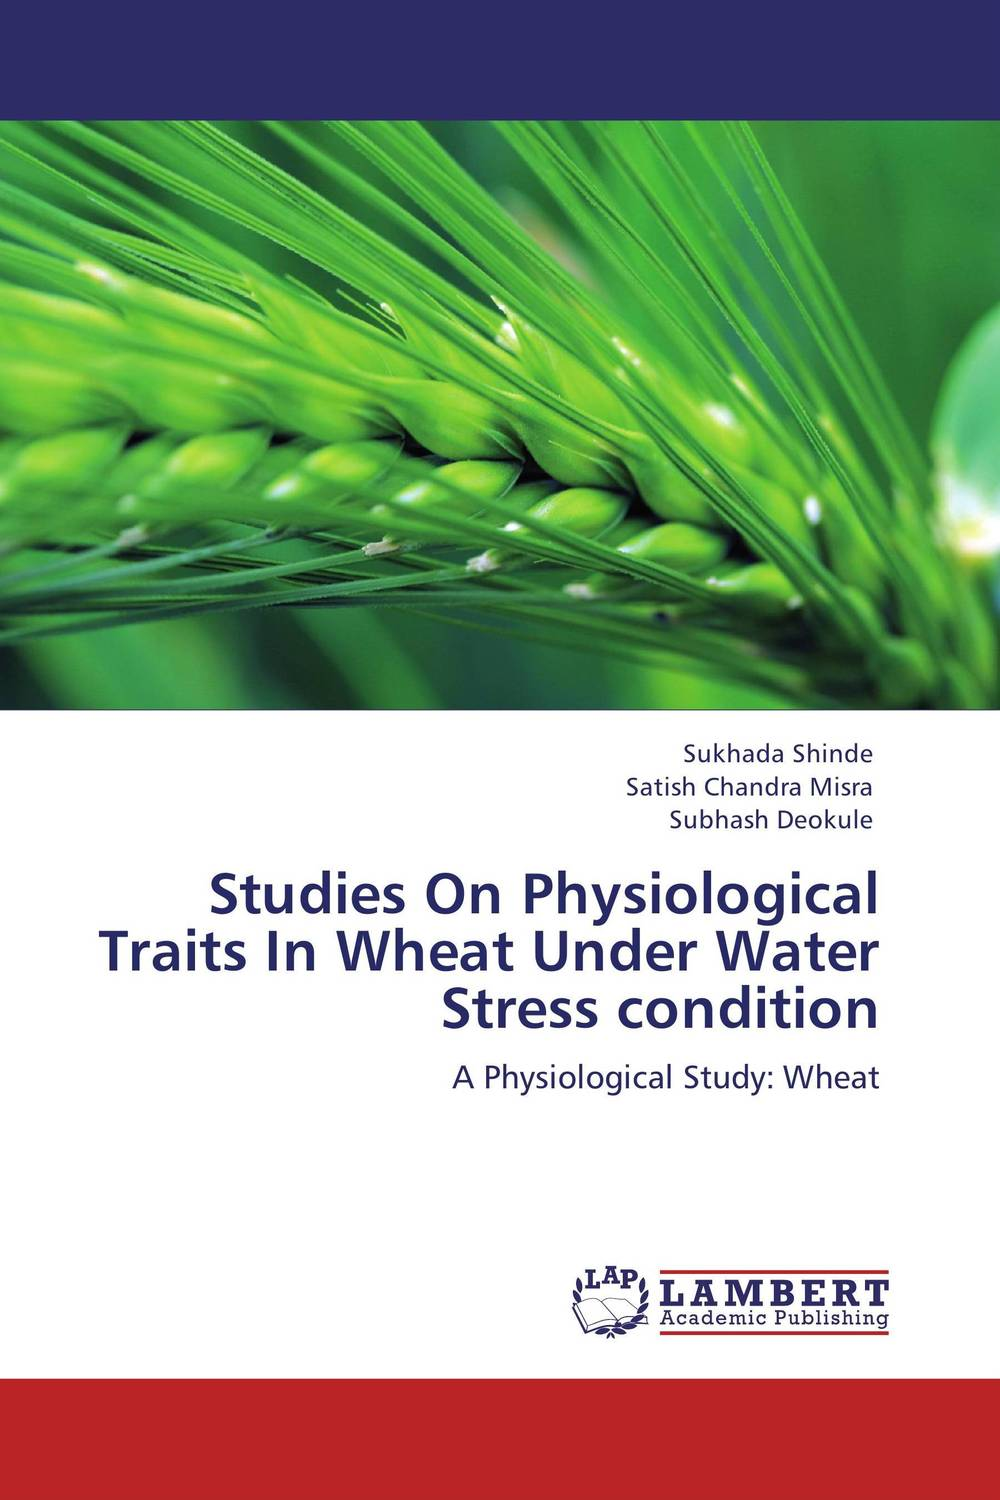 Studies On Physiological Traits In Wheat Under Water Stress condition